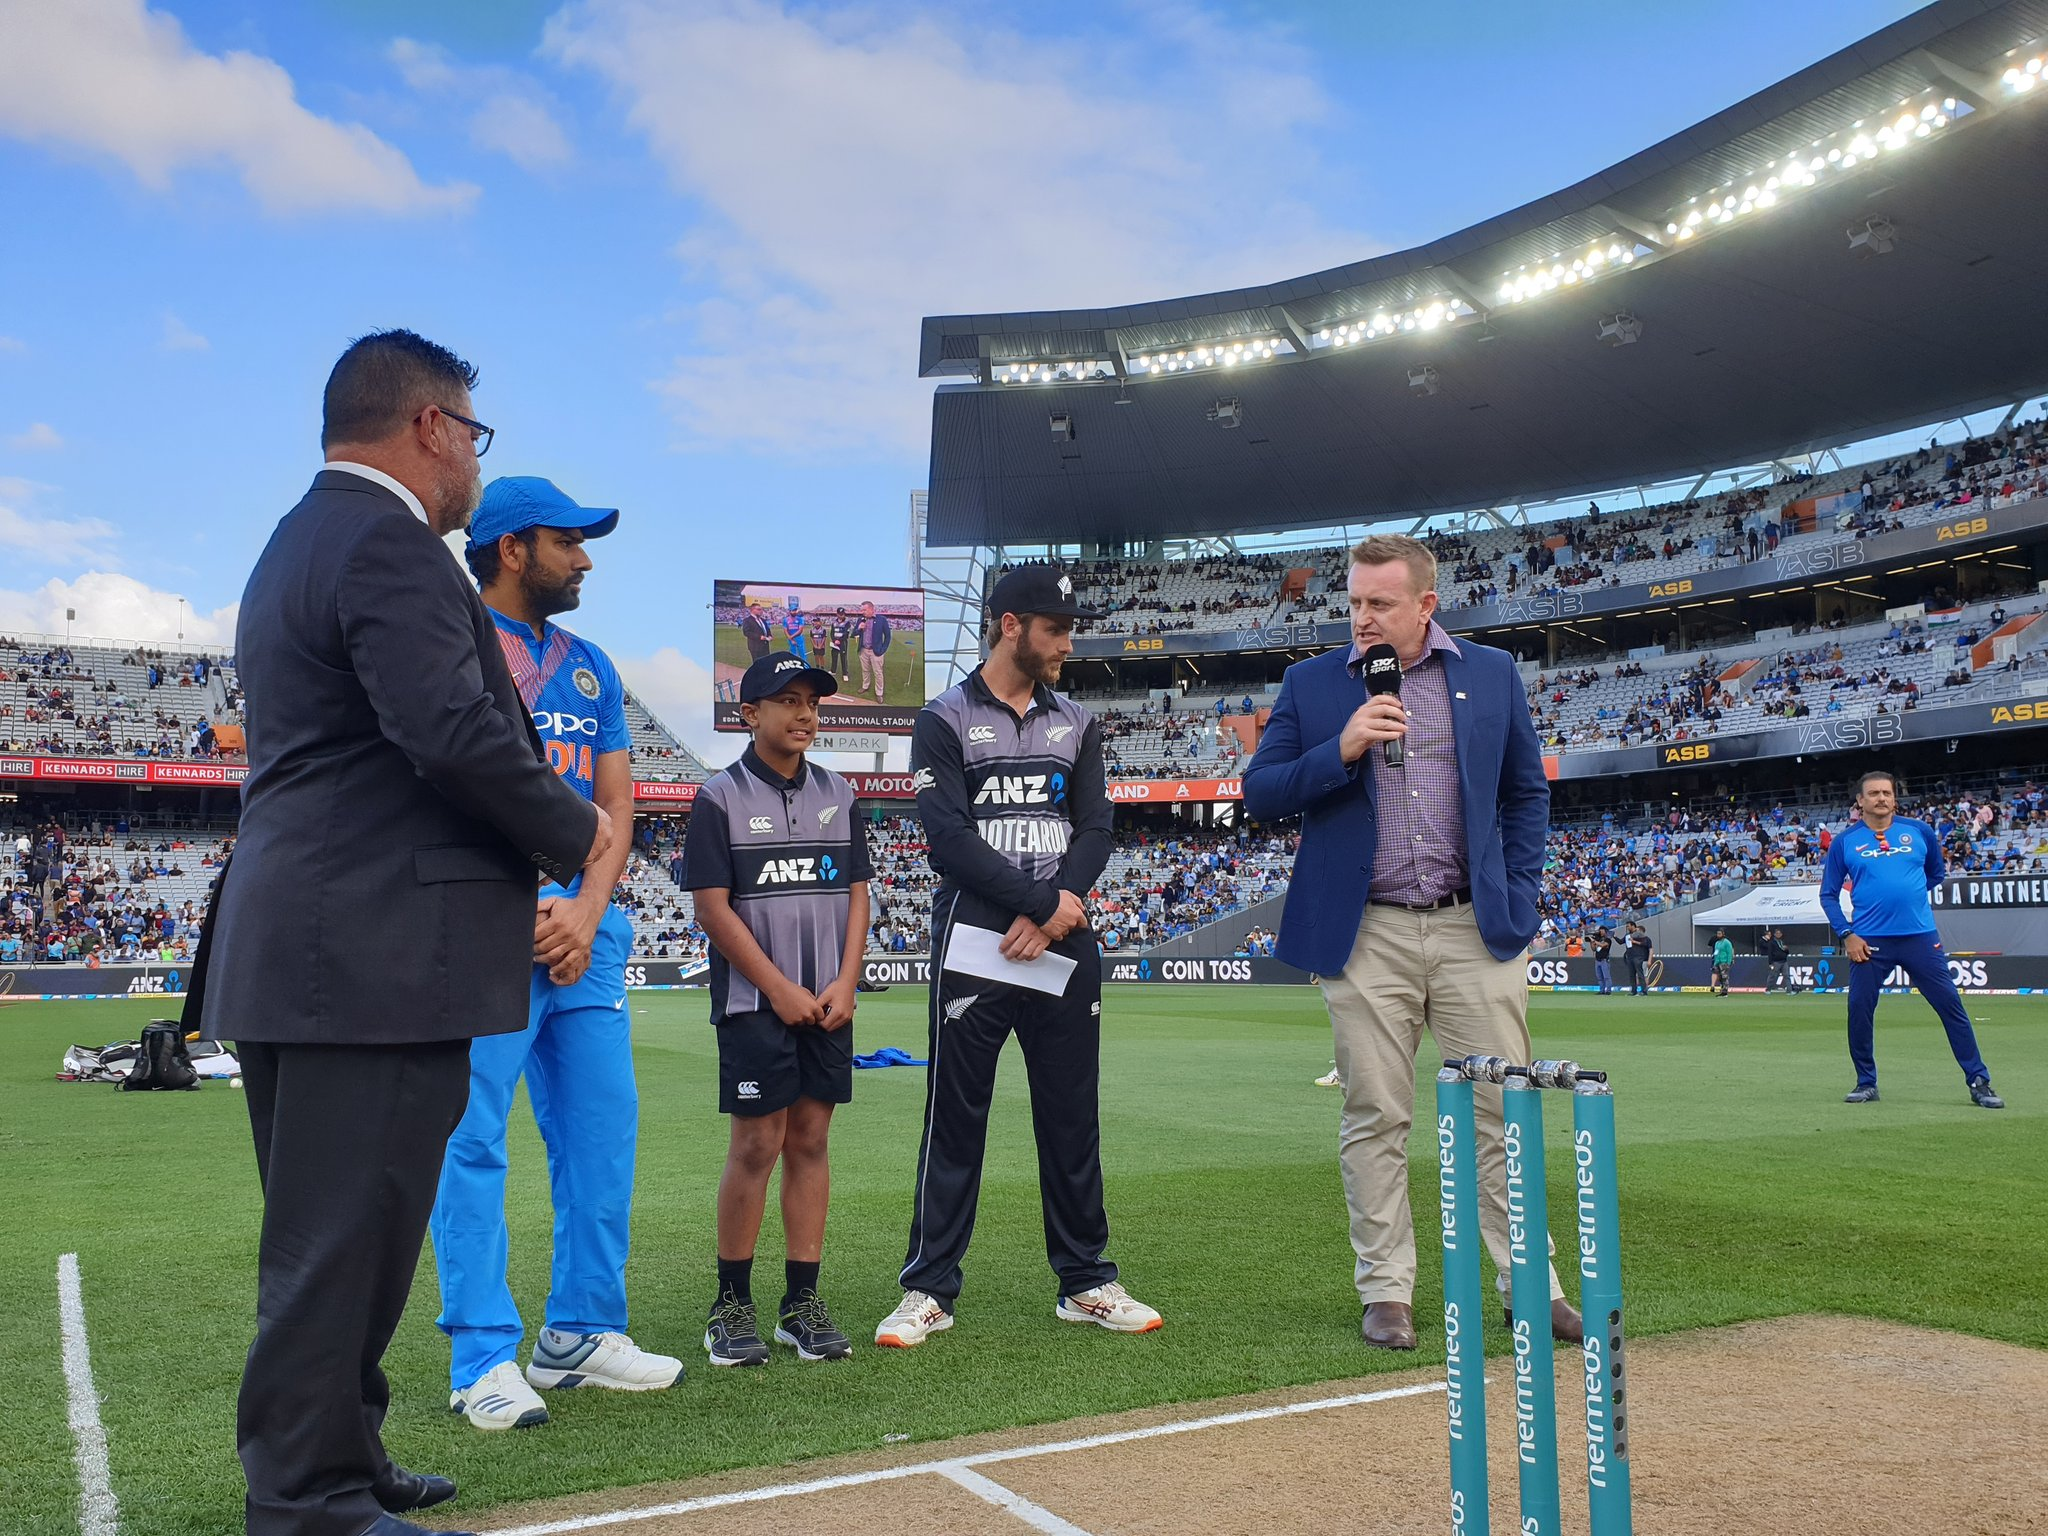 rohit sharma during toss ( image source: twitter)